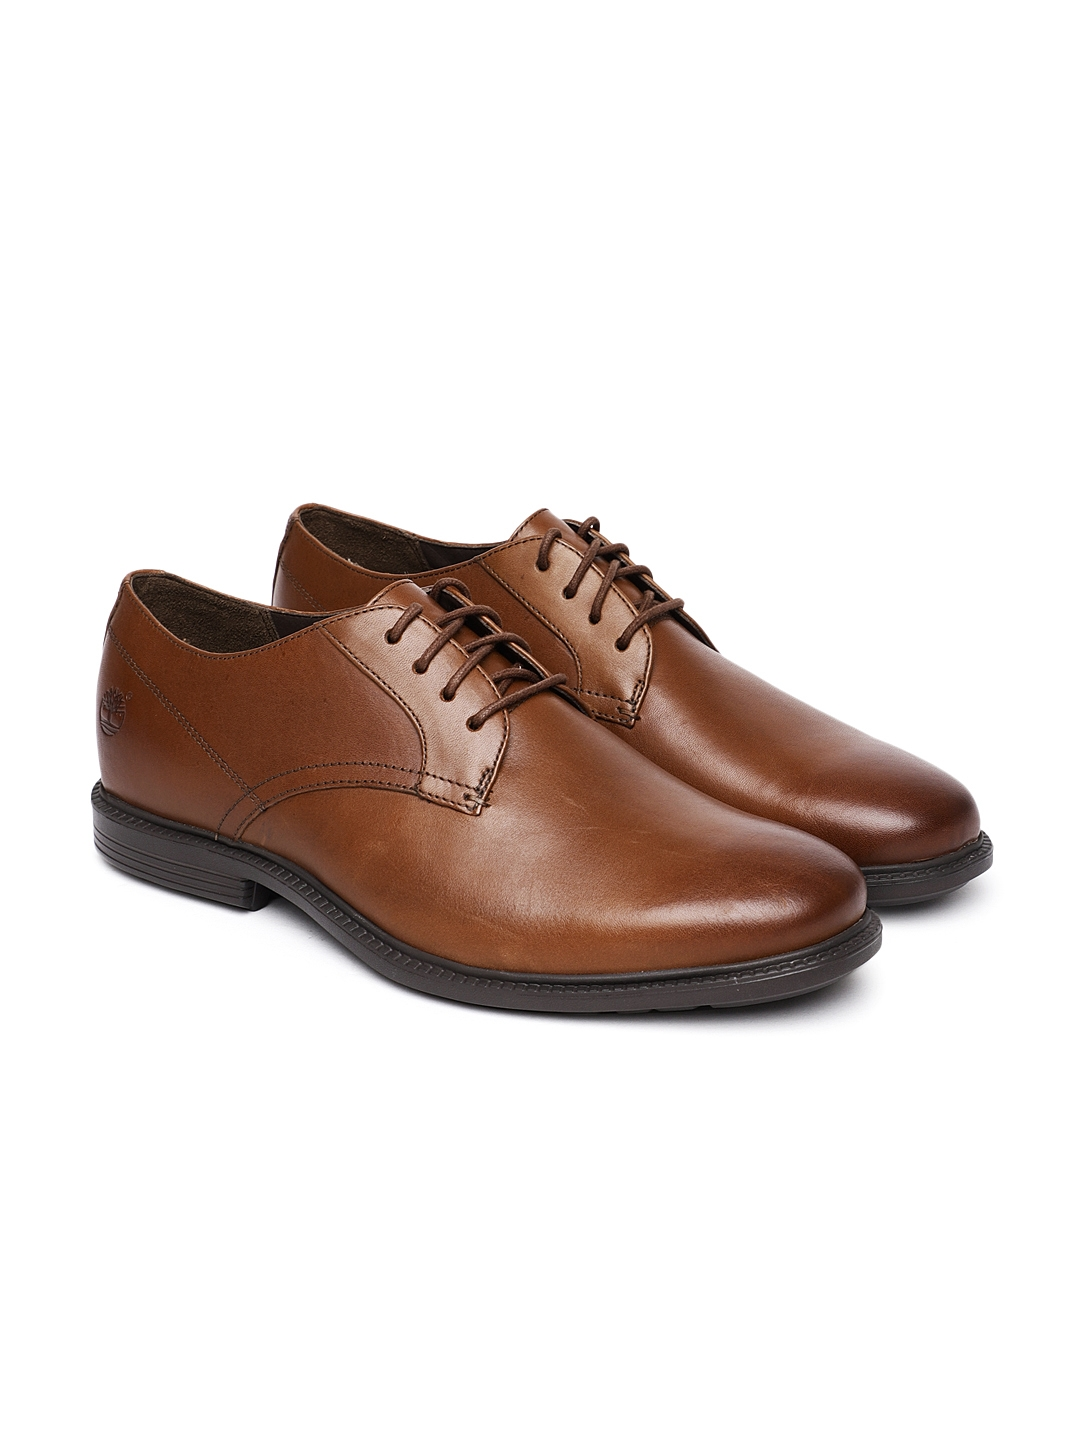 ec351ce5e420 Buy Timberland Men Brown ARDEN HEIGHTS Formal Leather Derbys ...